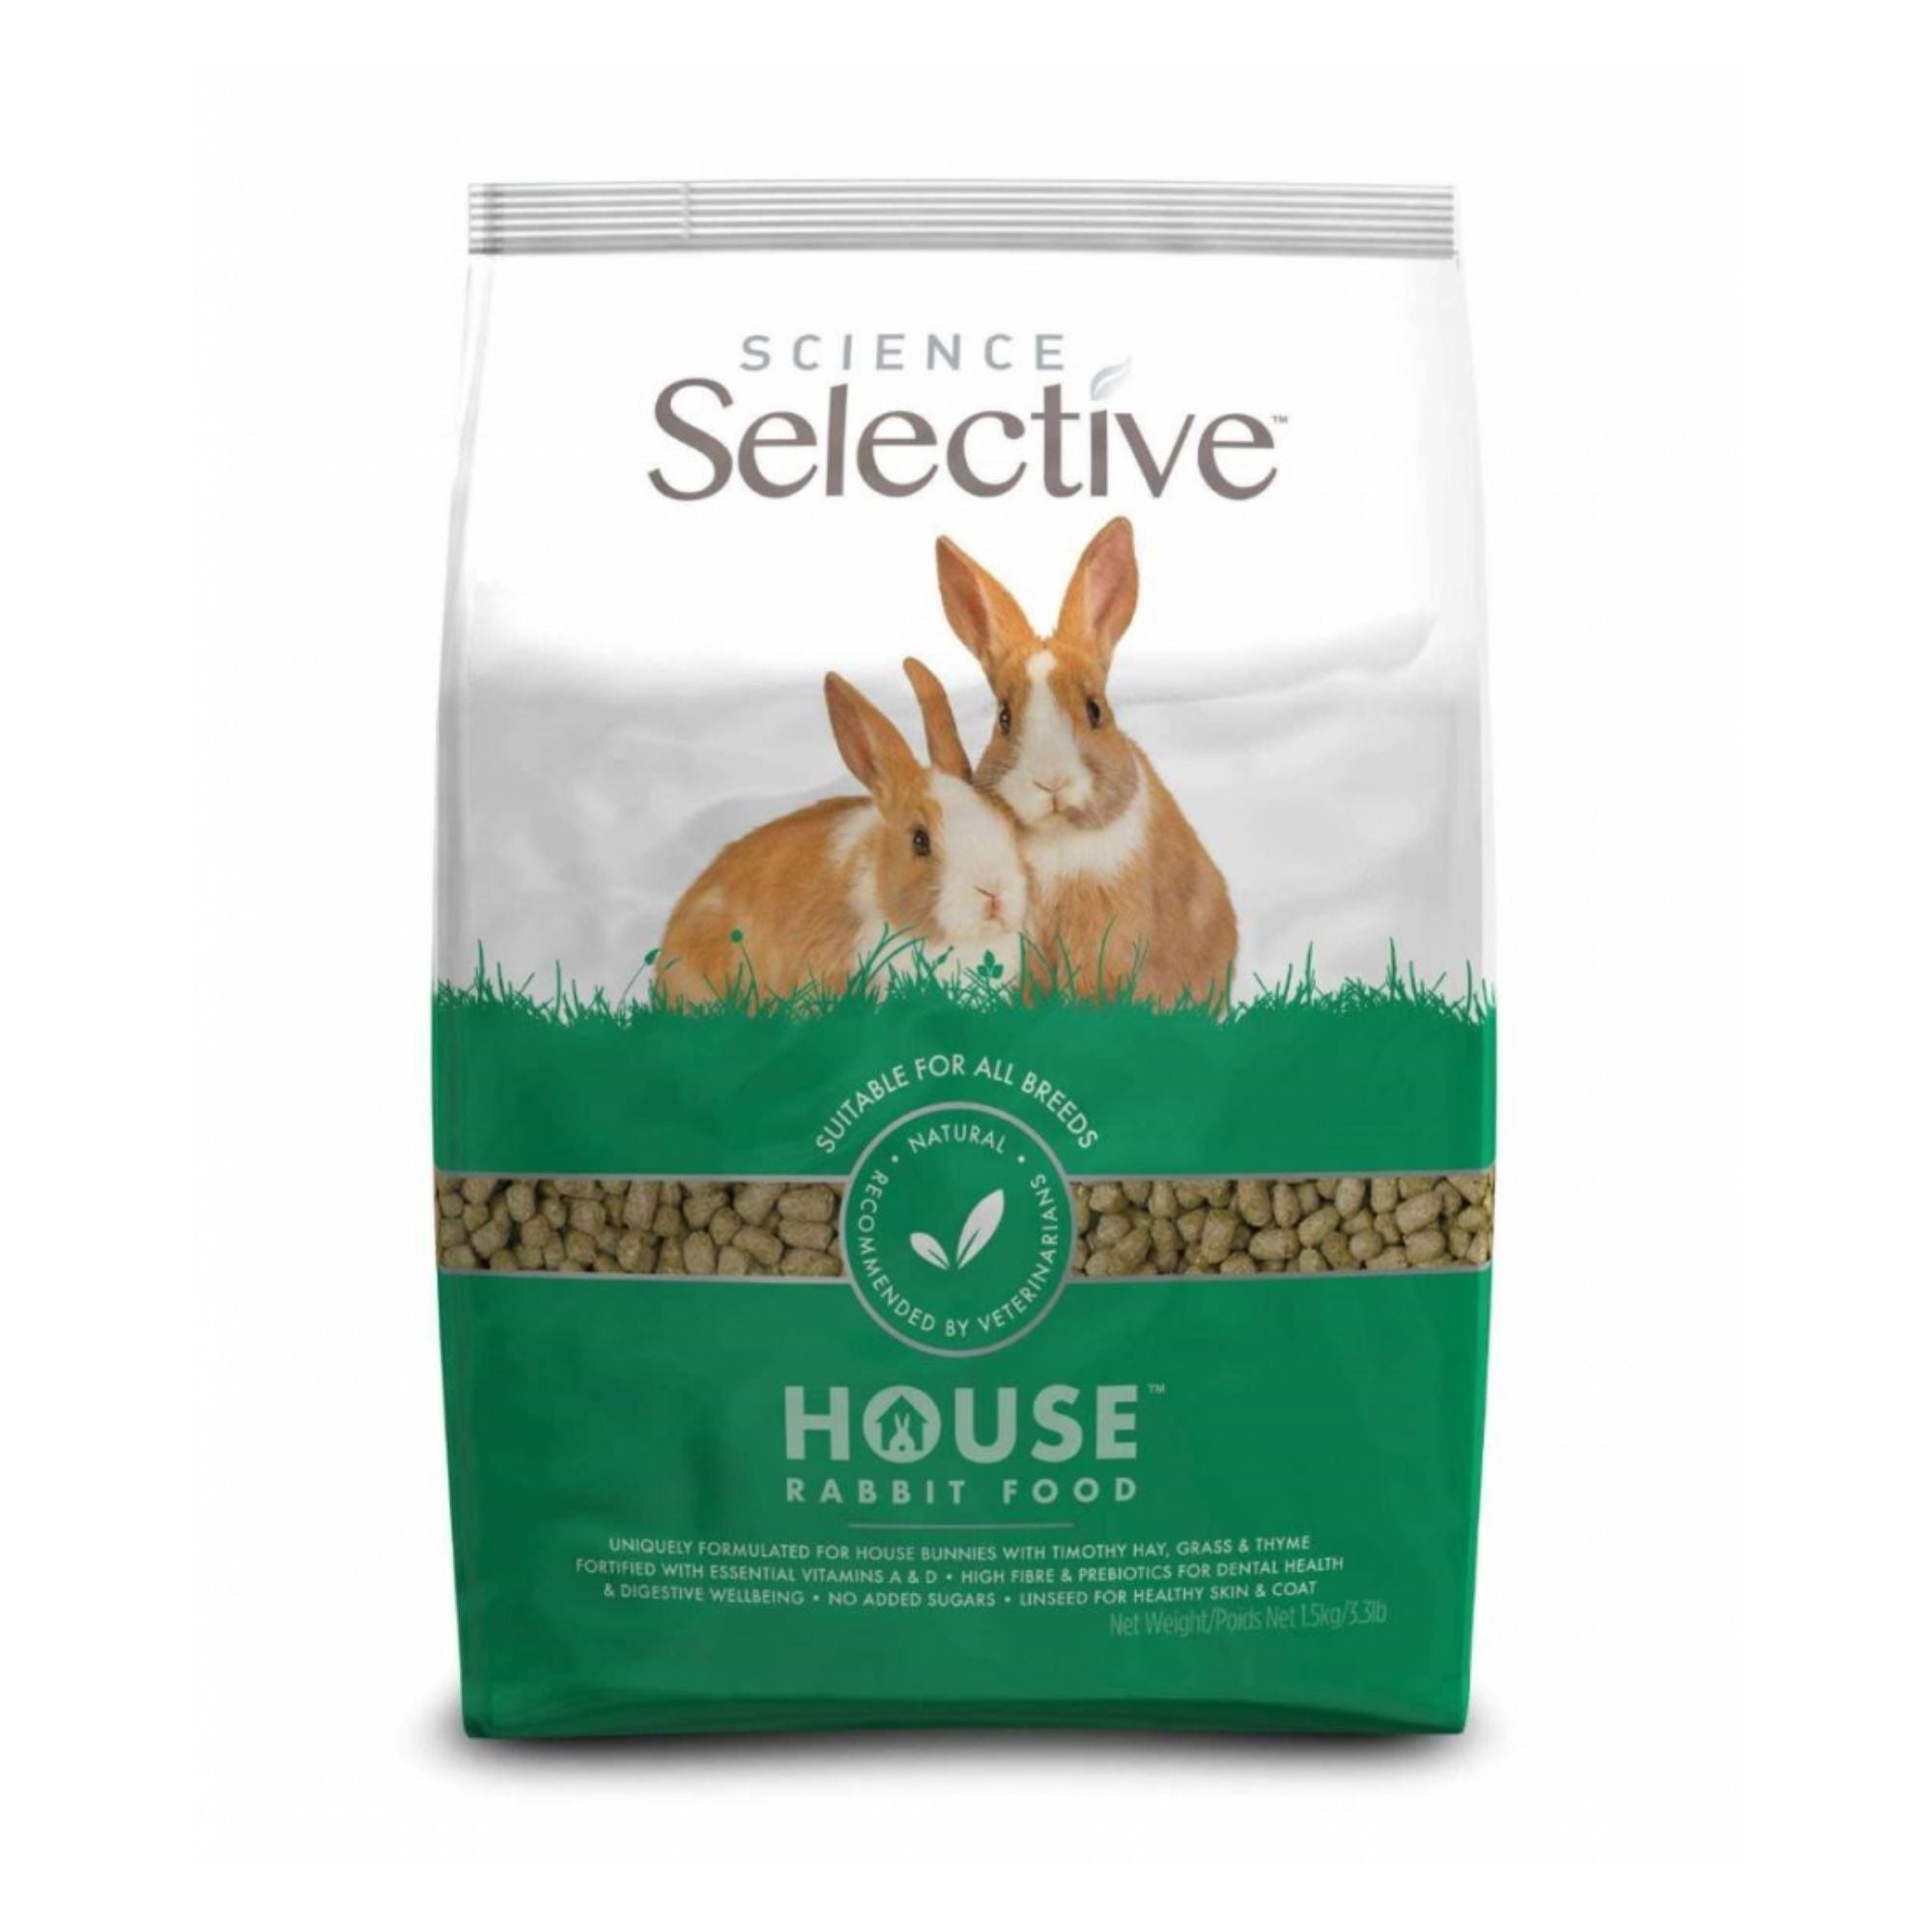 Supreme Science Selective Adult House Rabbit Food | Barks & Bunnies